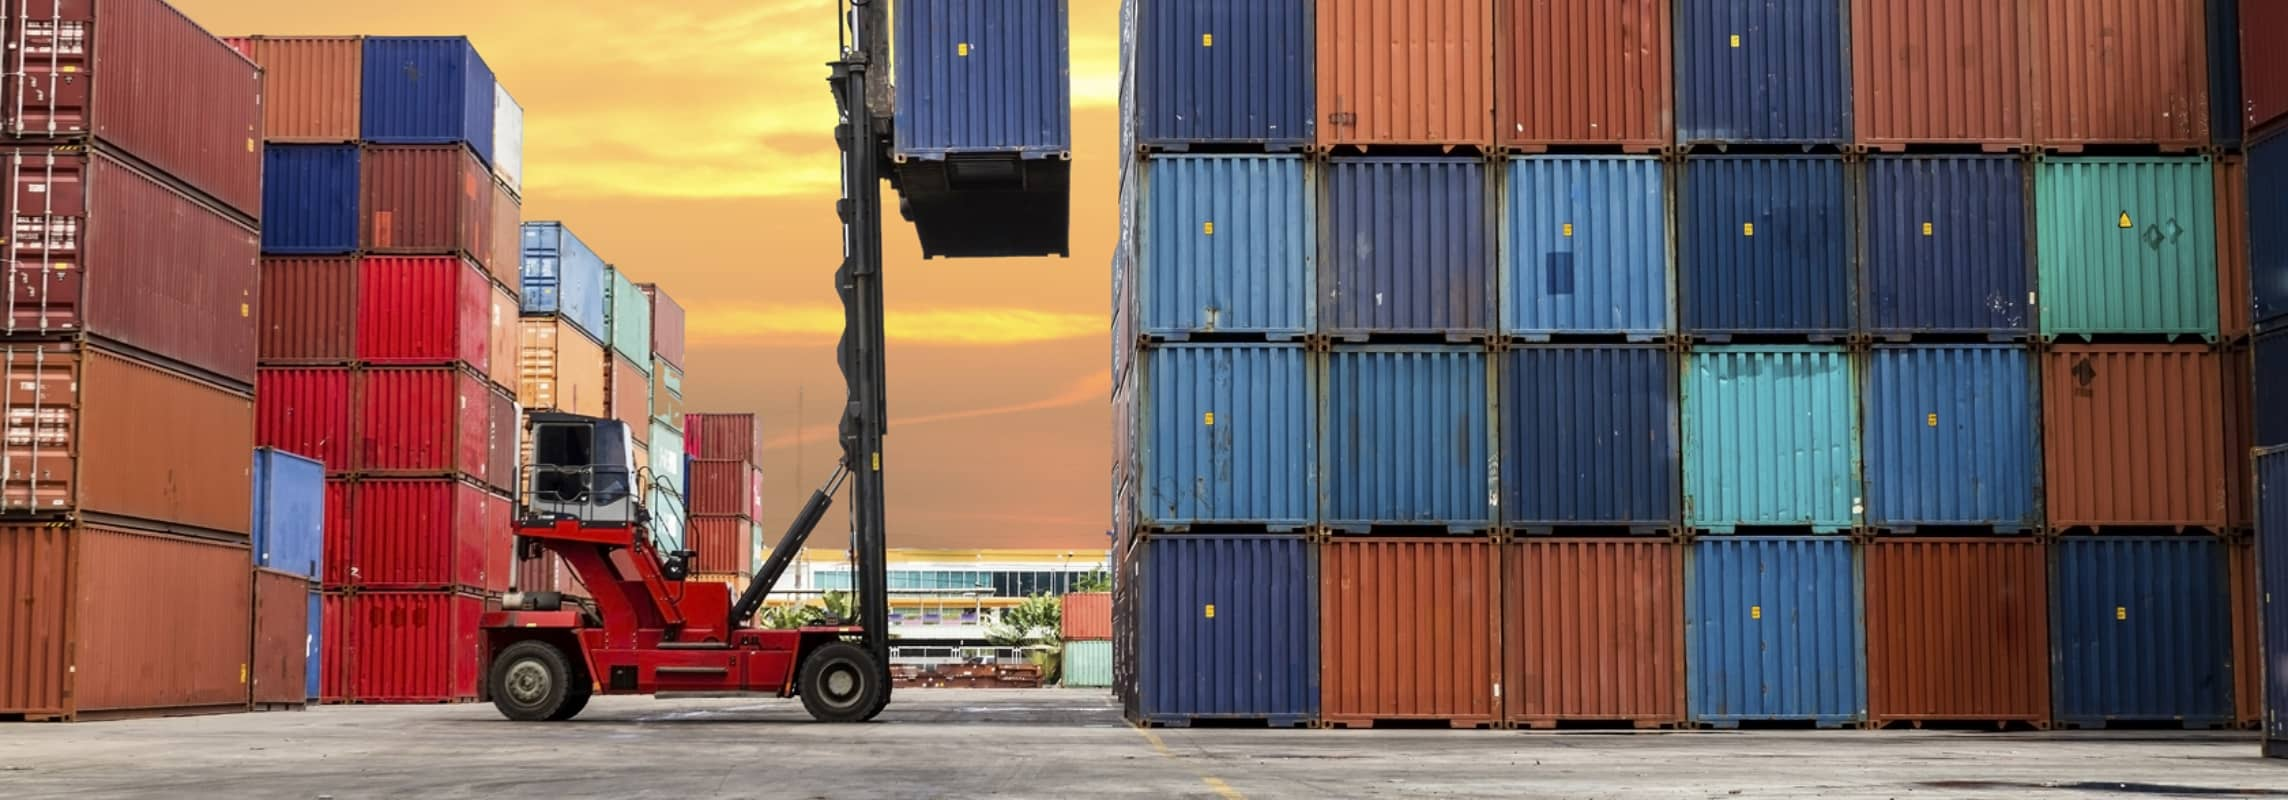 Forklift moving shipping containers